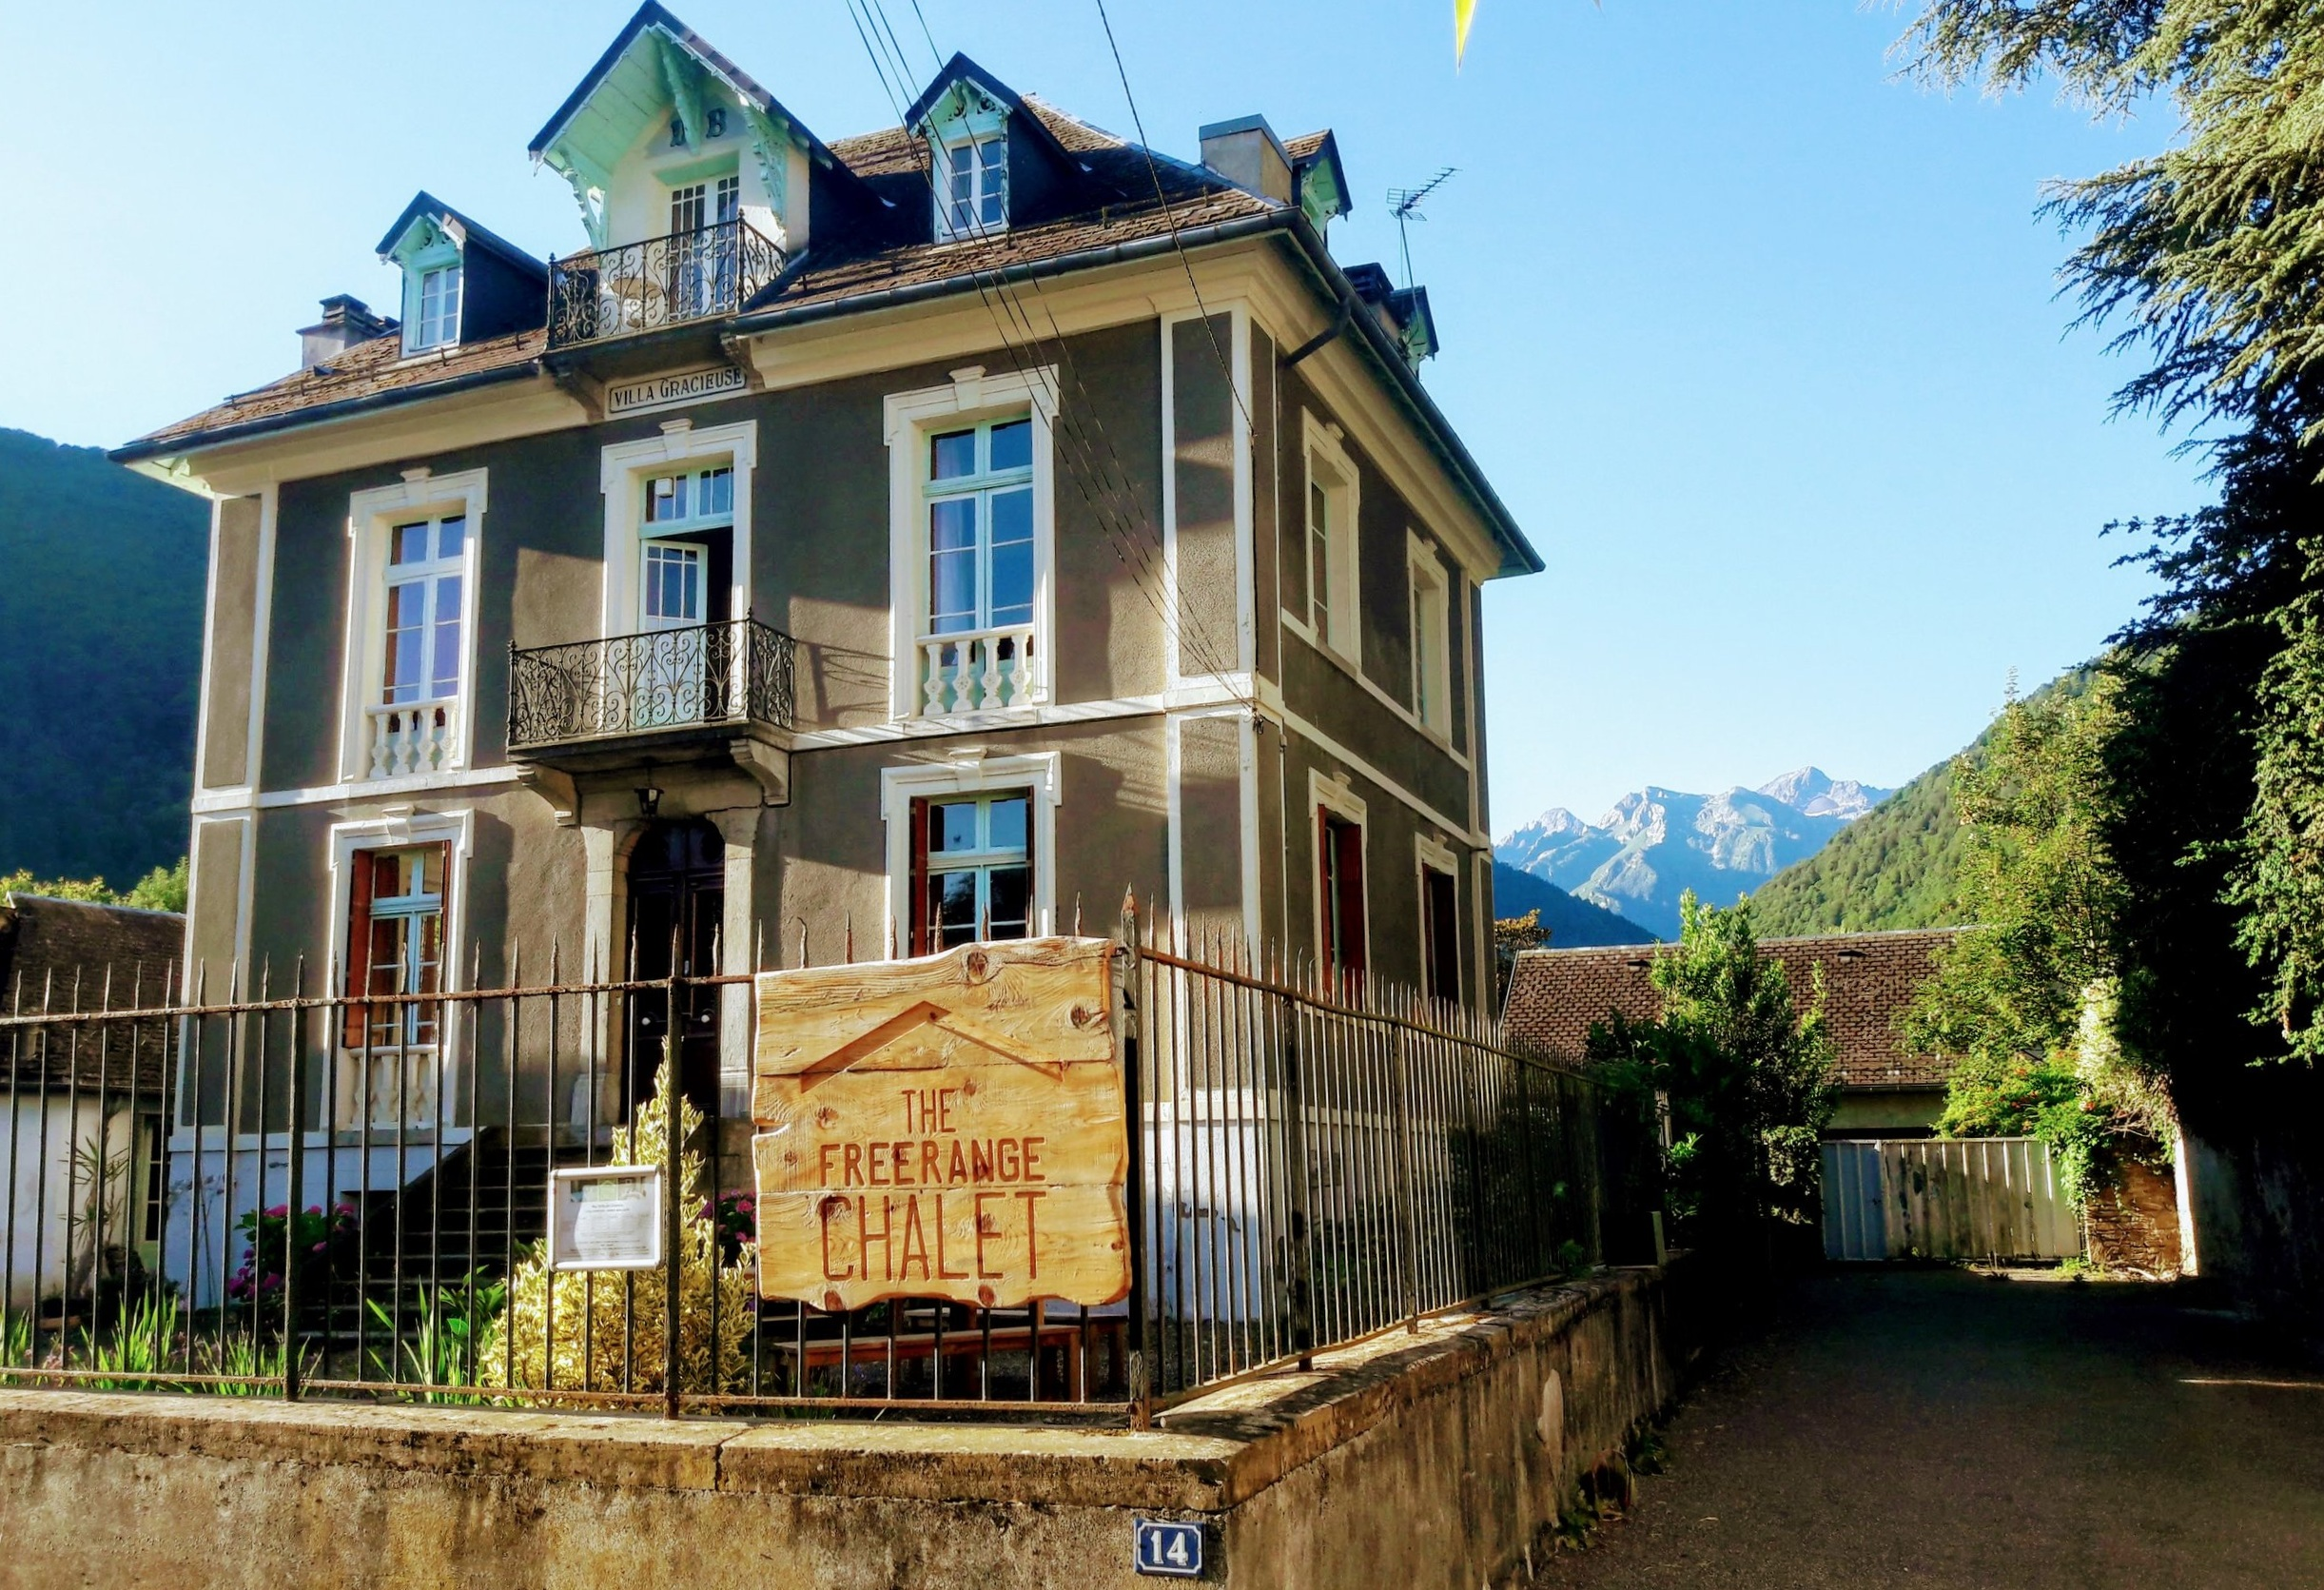 Picture perfect day in the Pyrenees - Villa Gracieuse with her mountain backdrop